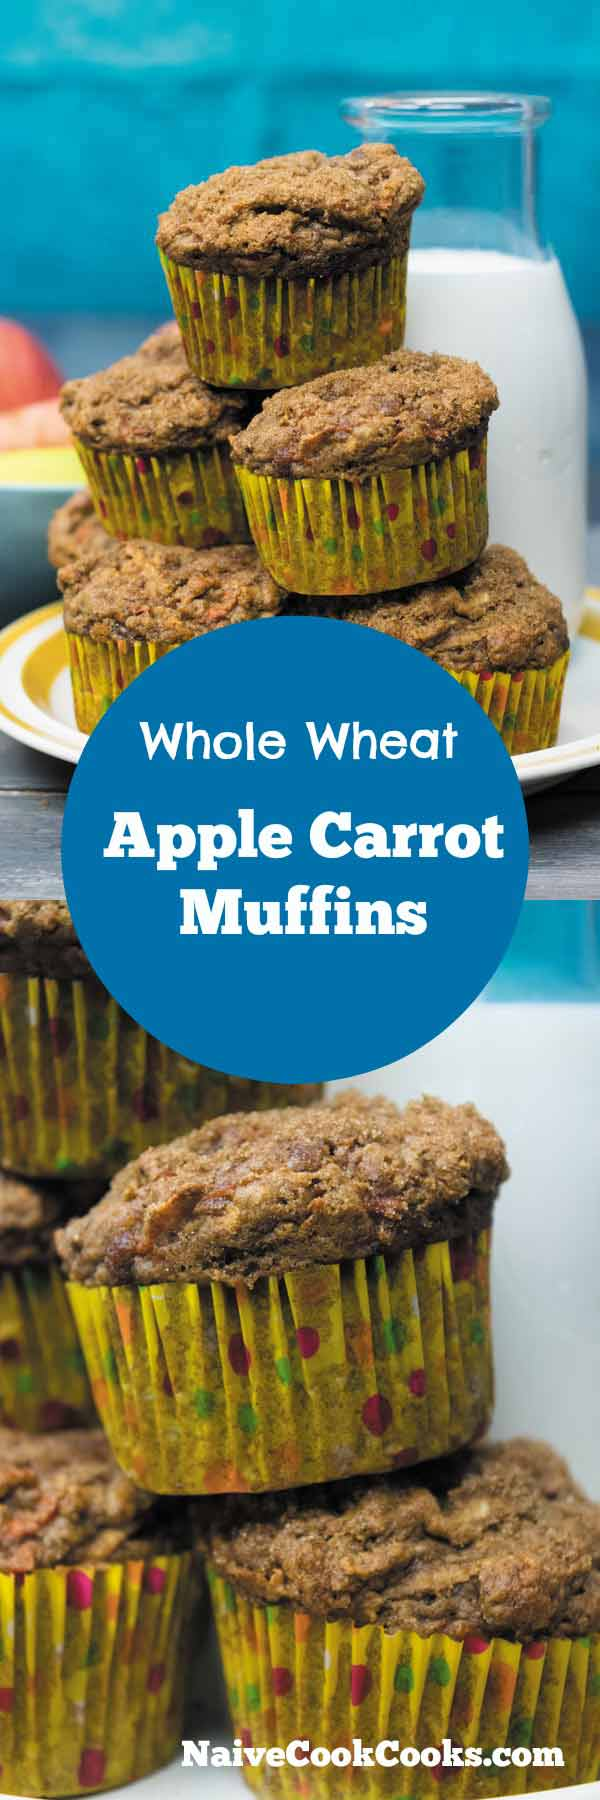 Carrot Apple Muffins for breakfast